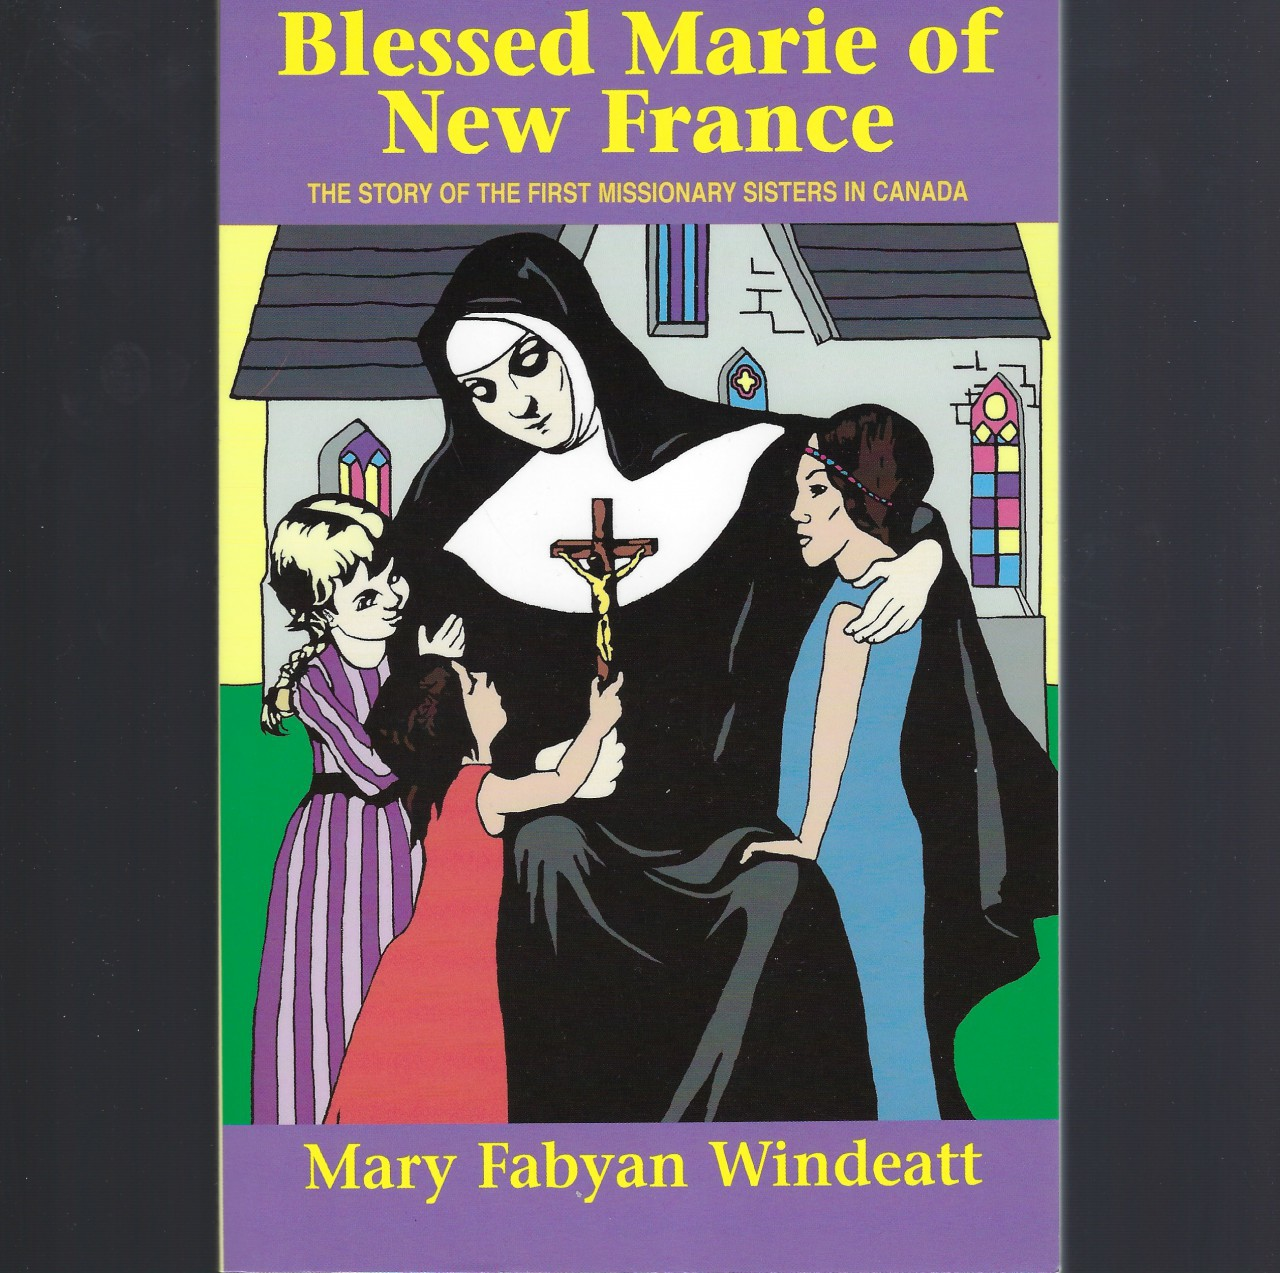 Blessed Marie Of New France Windeatt Saint Book, Mary Fabyan Windeatt